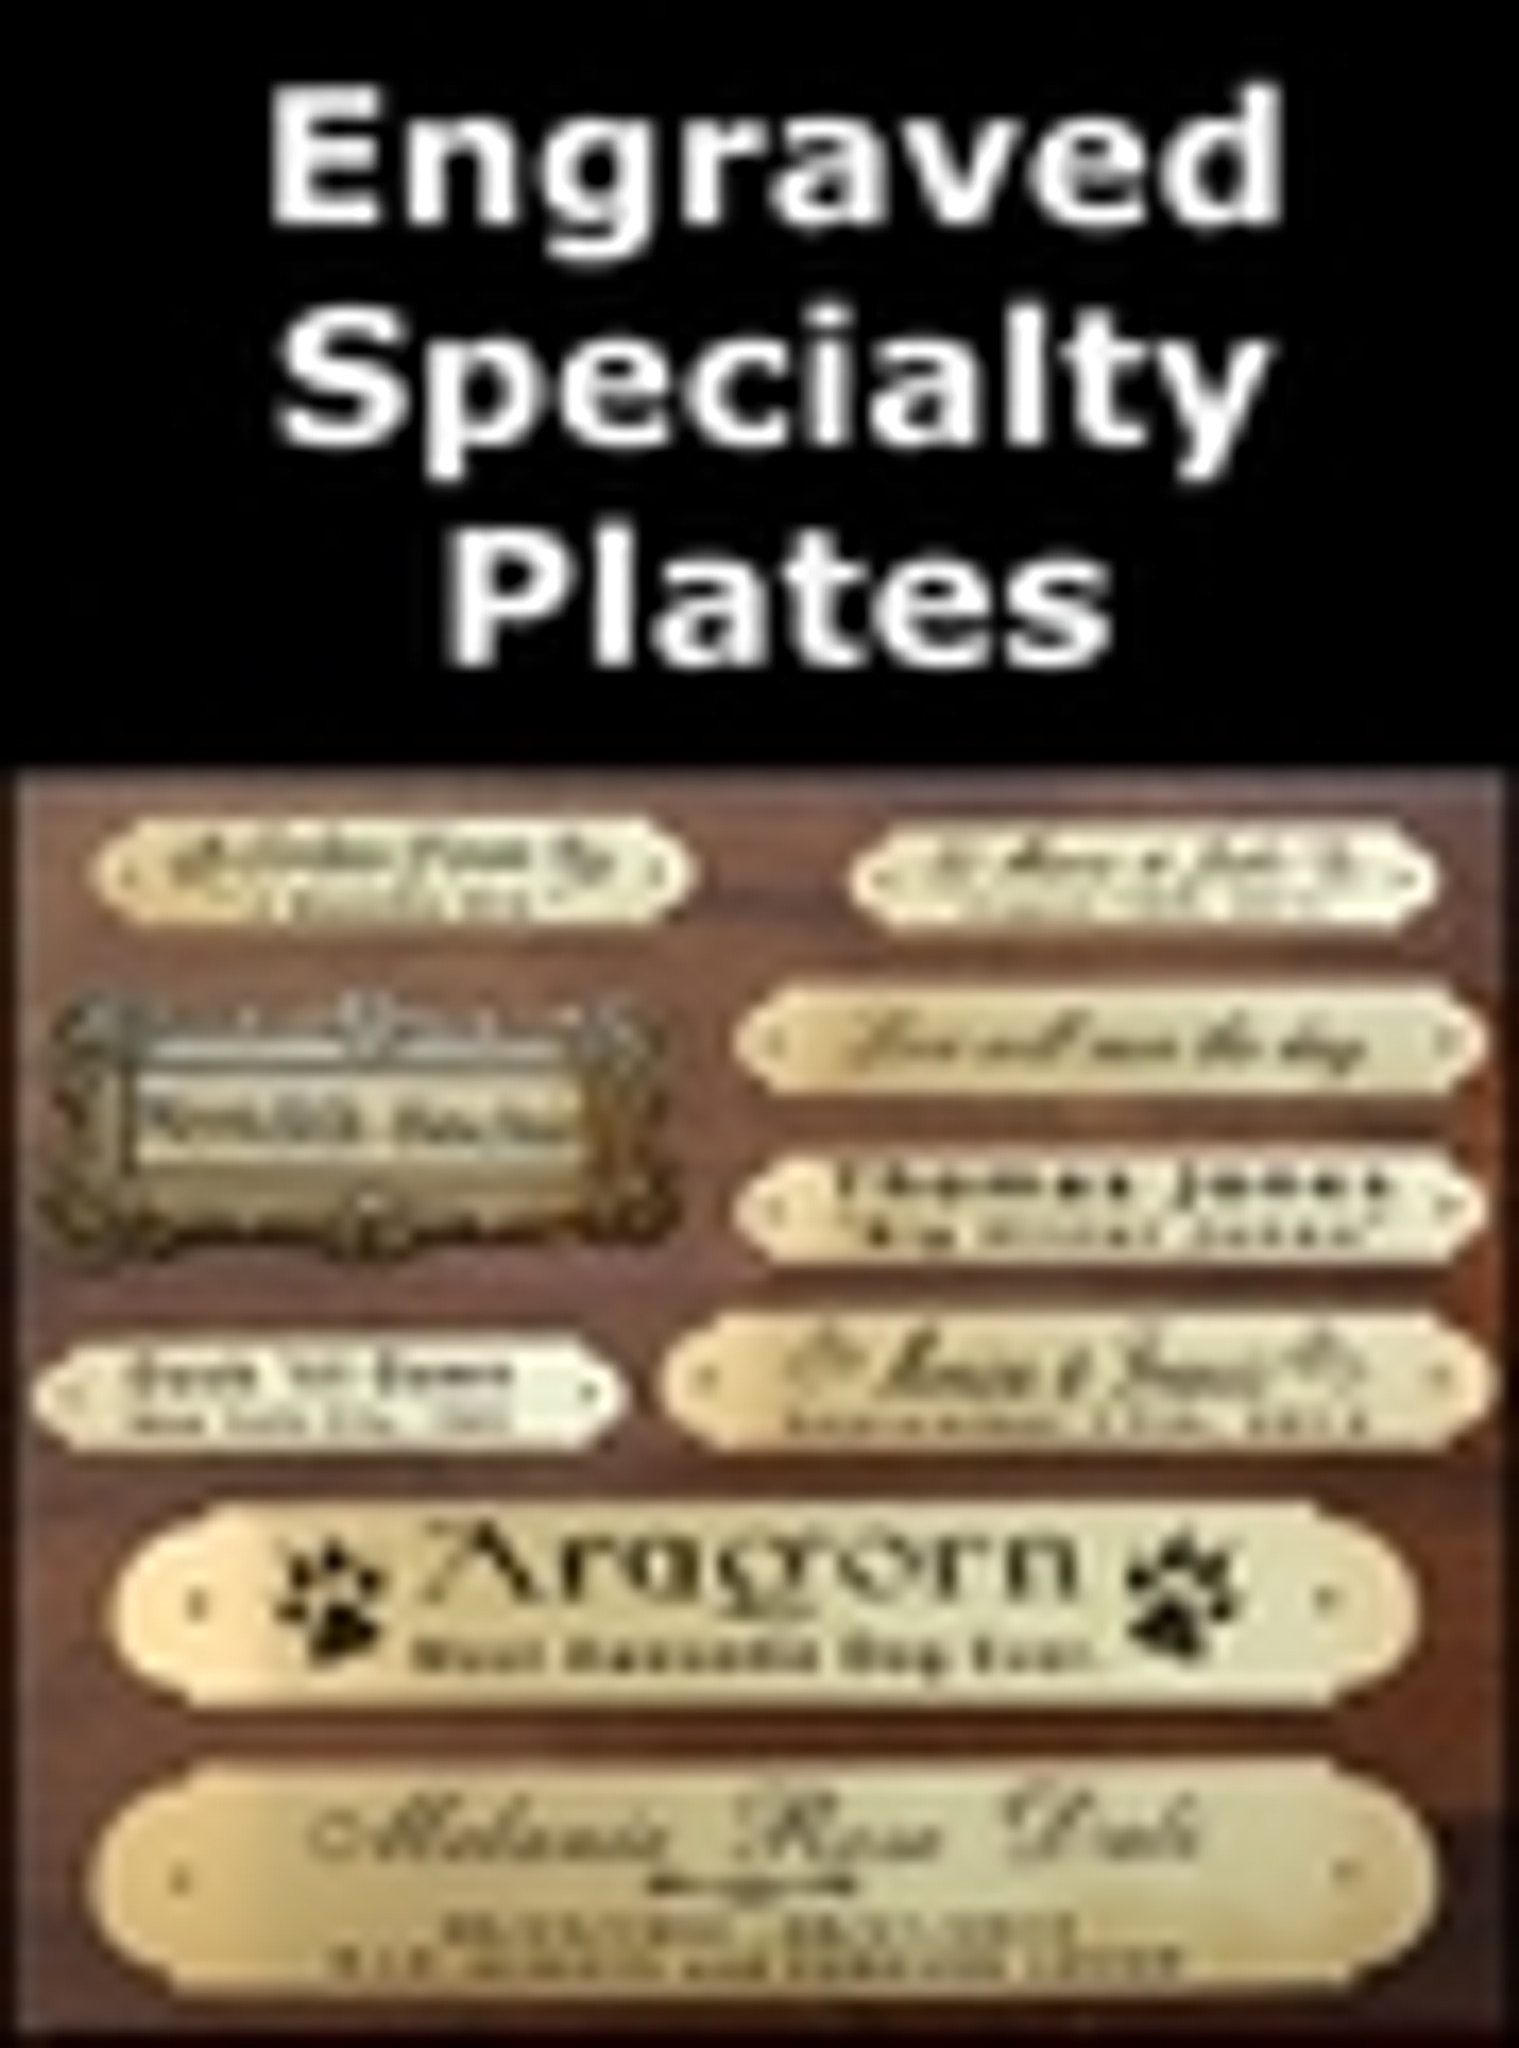 Engraved Specialty Plates